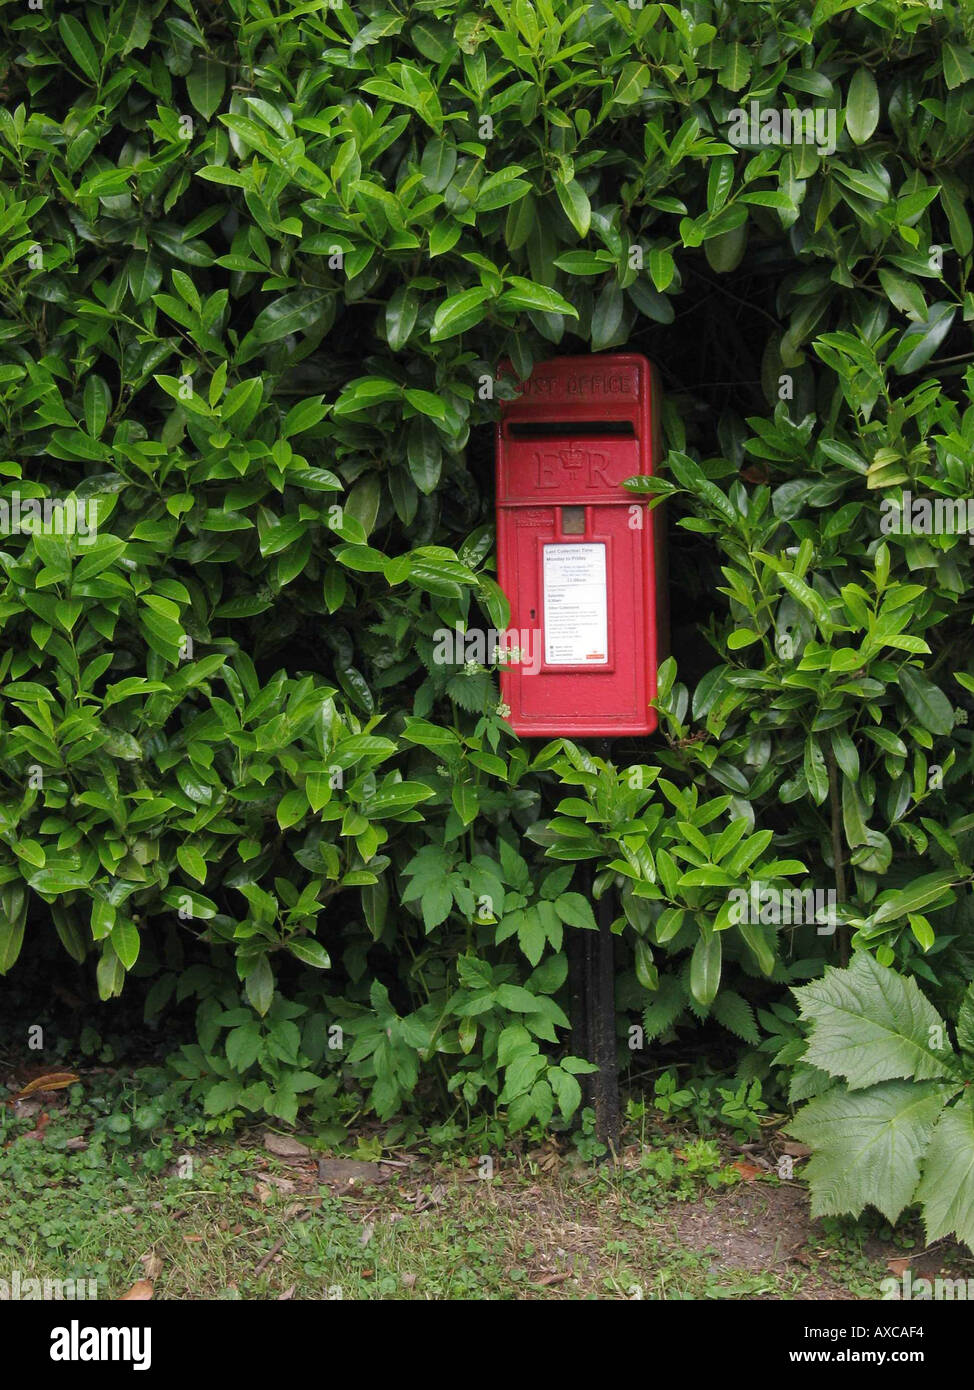 A red post box in a green laurel hedge - Stock Image